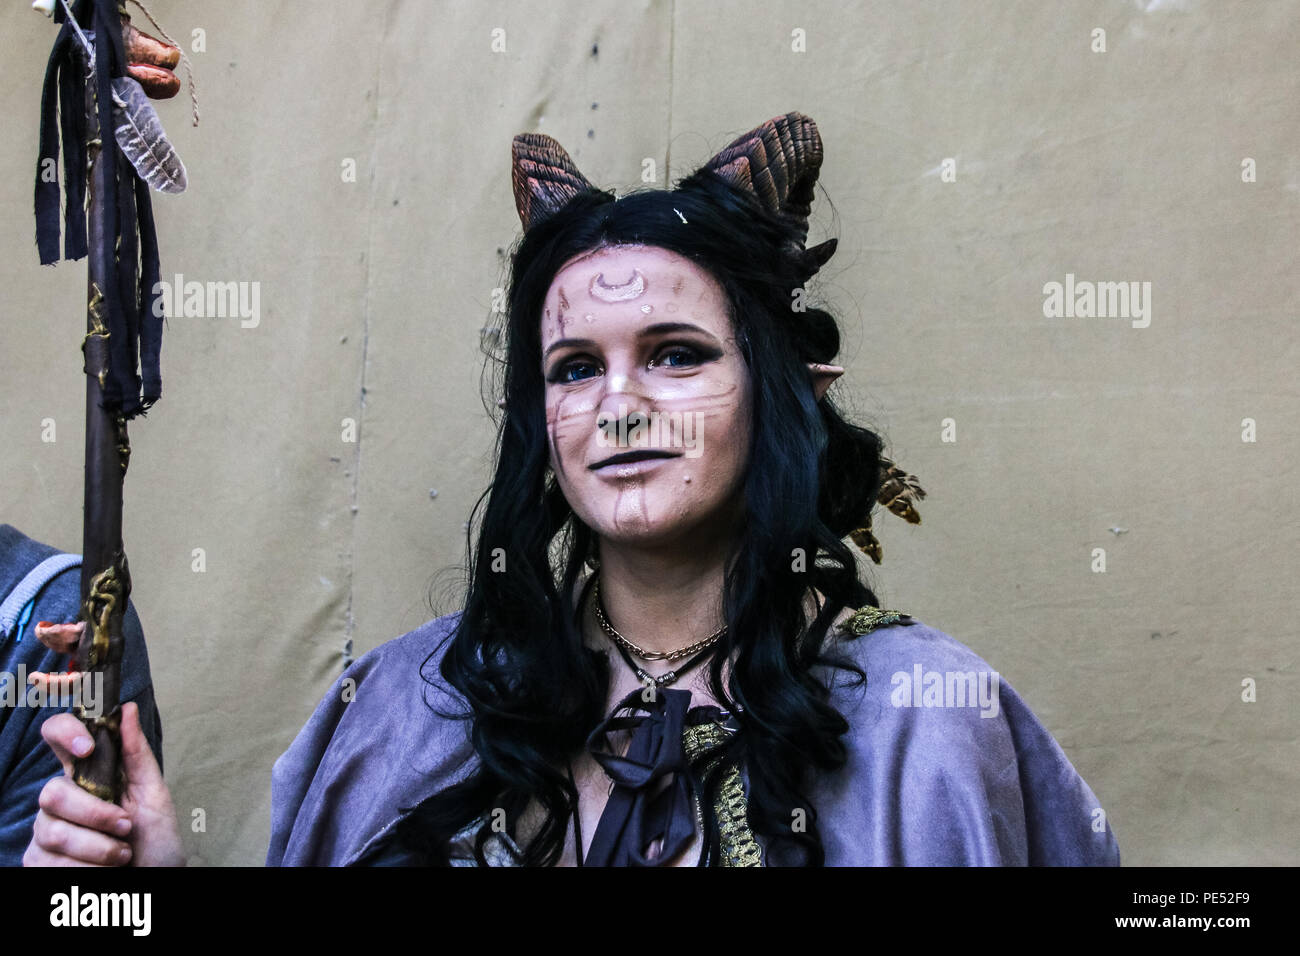 Mythical Creatures Halloween Costumes.Magdeburg Germany May 20 2018 Portrait Of A Mythical